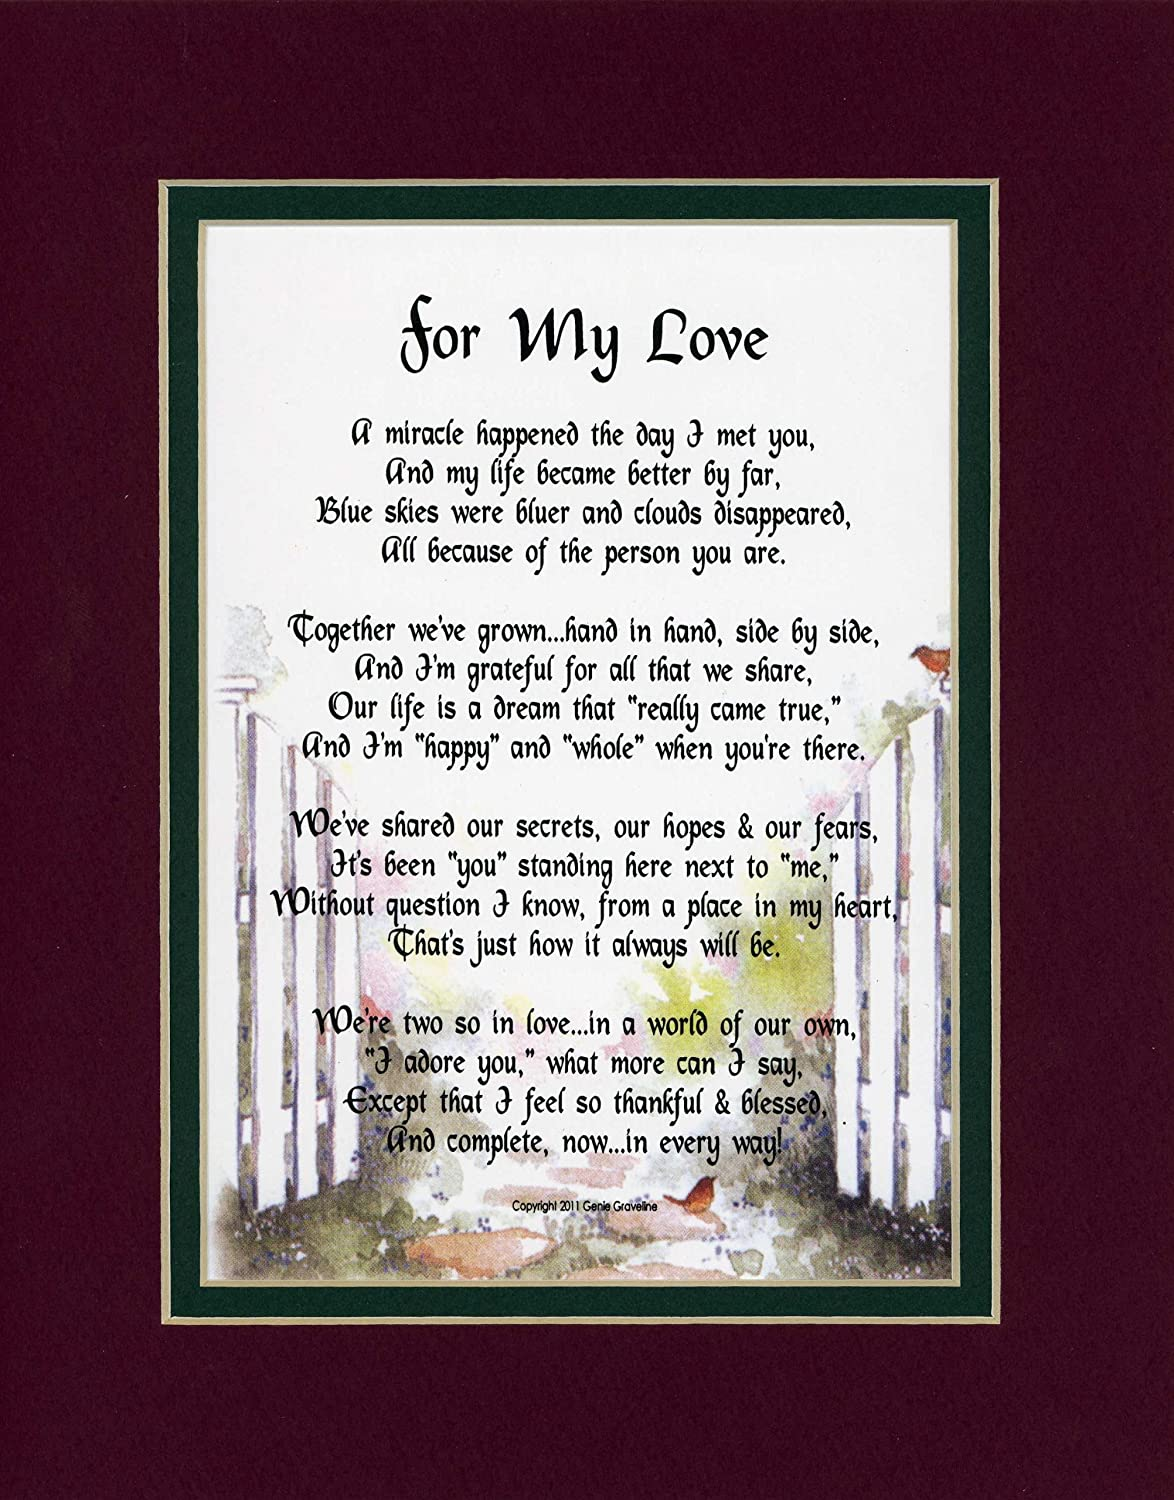 Genies Poems A Birthday Gift For A Husband Or Wife 84a Poem For The Love Of Your Life